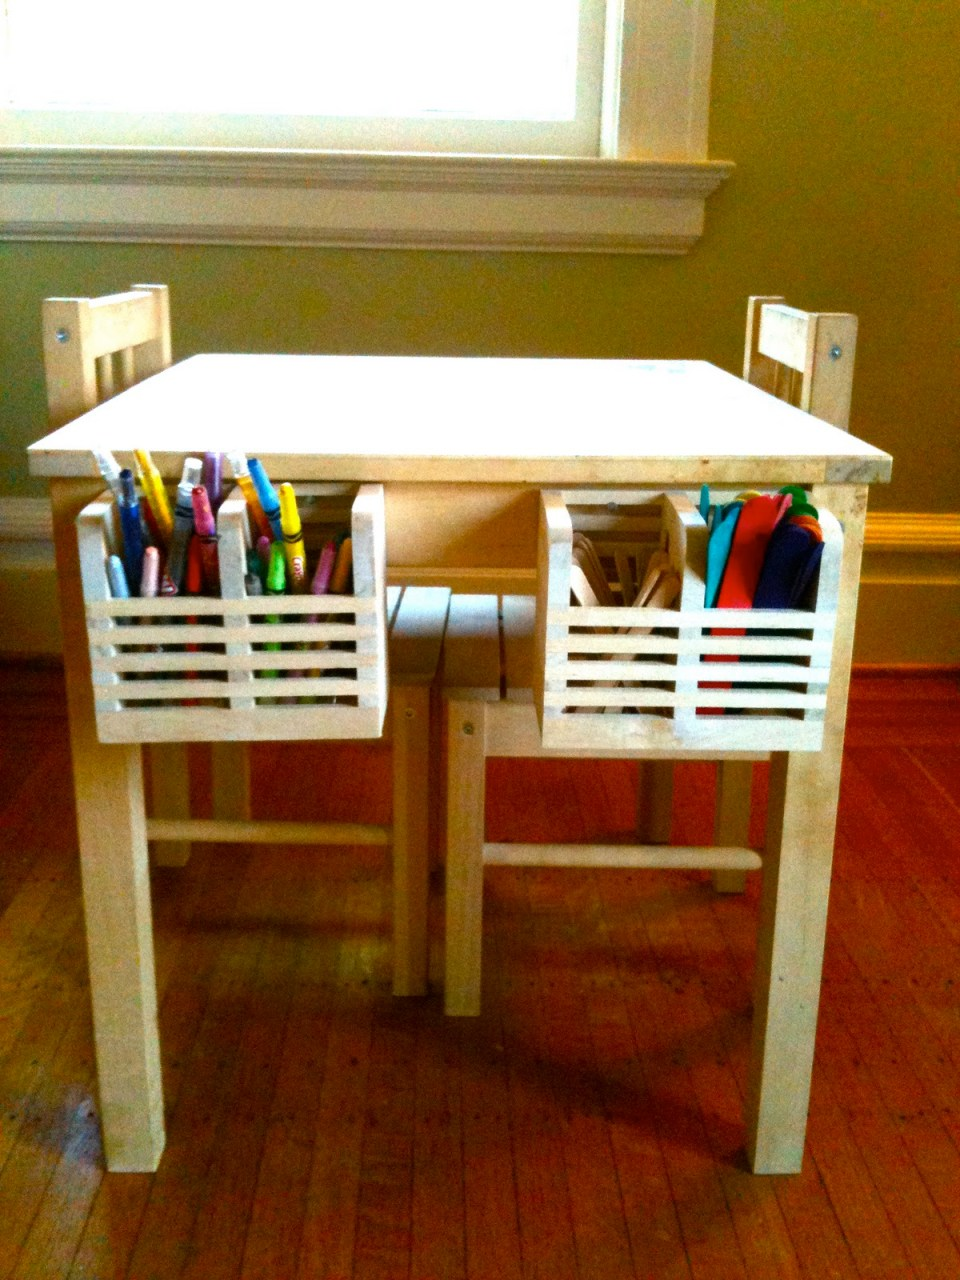 Children's table with two boxes placed inside that contain pencils